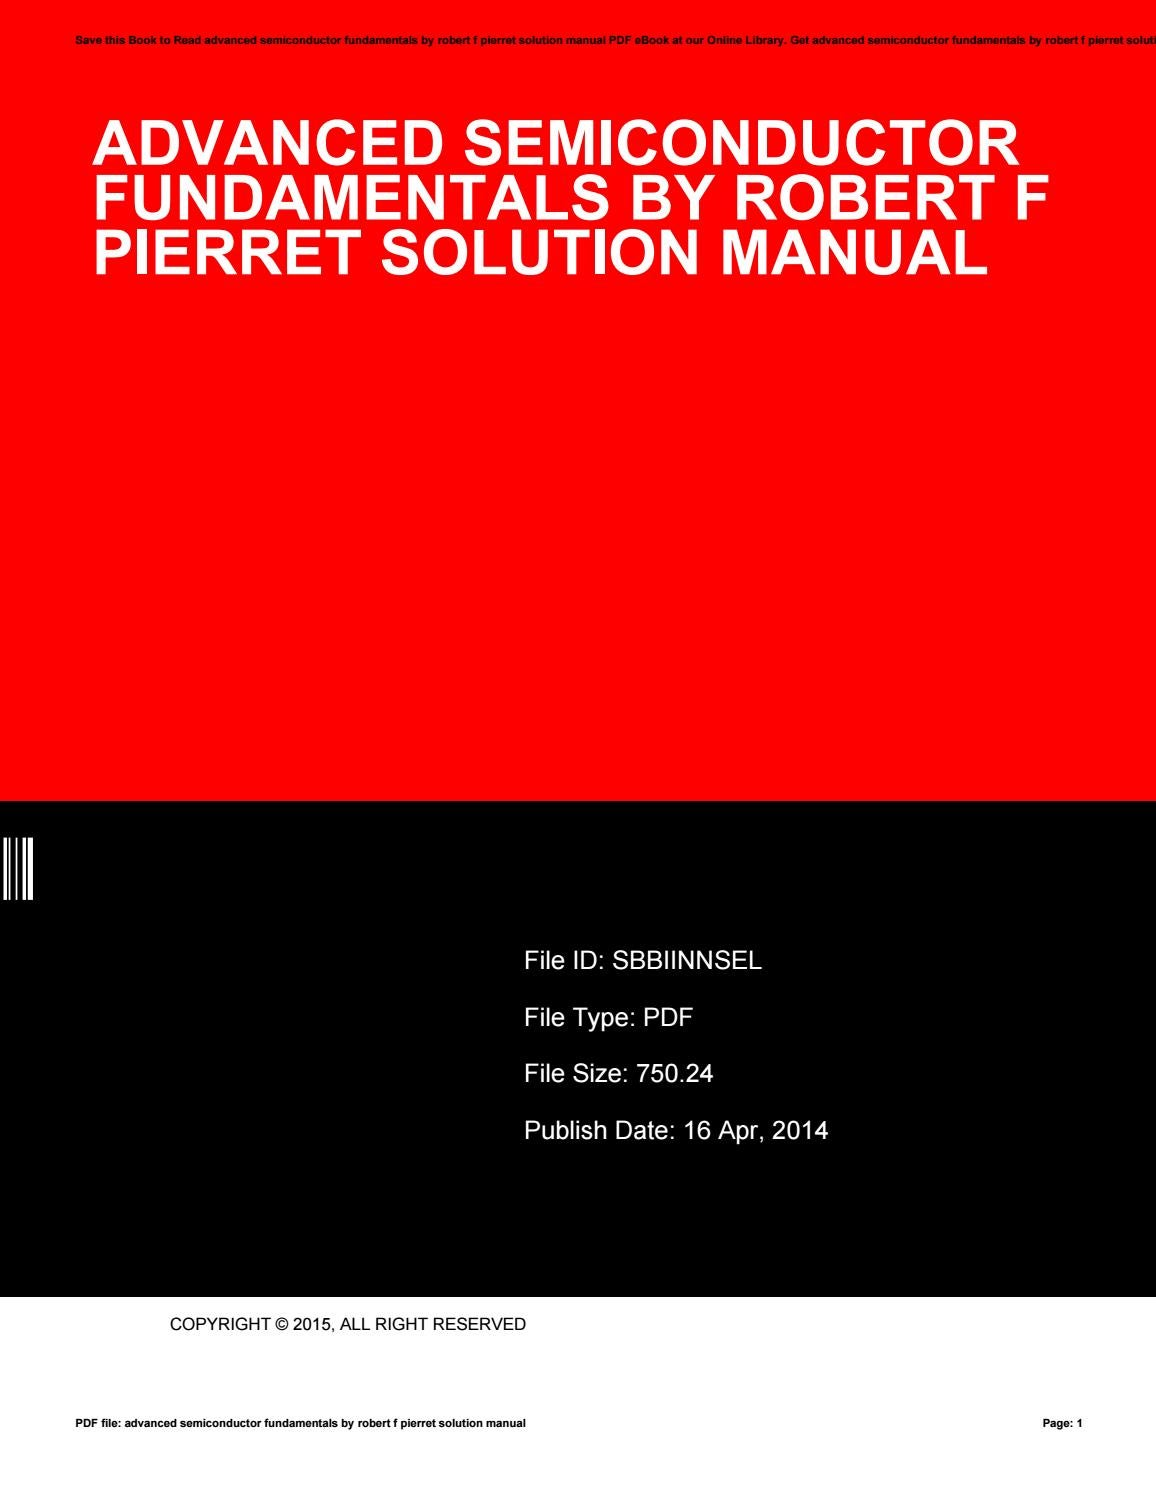 Advanced semiconductor fundamentals by robert f pierret solution manual by  uacro771 - issuu